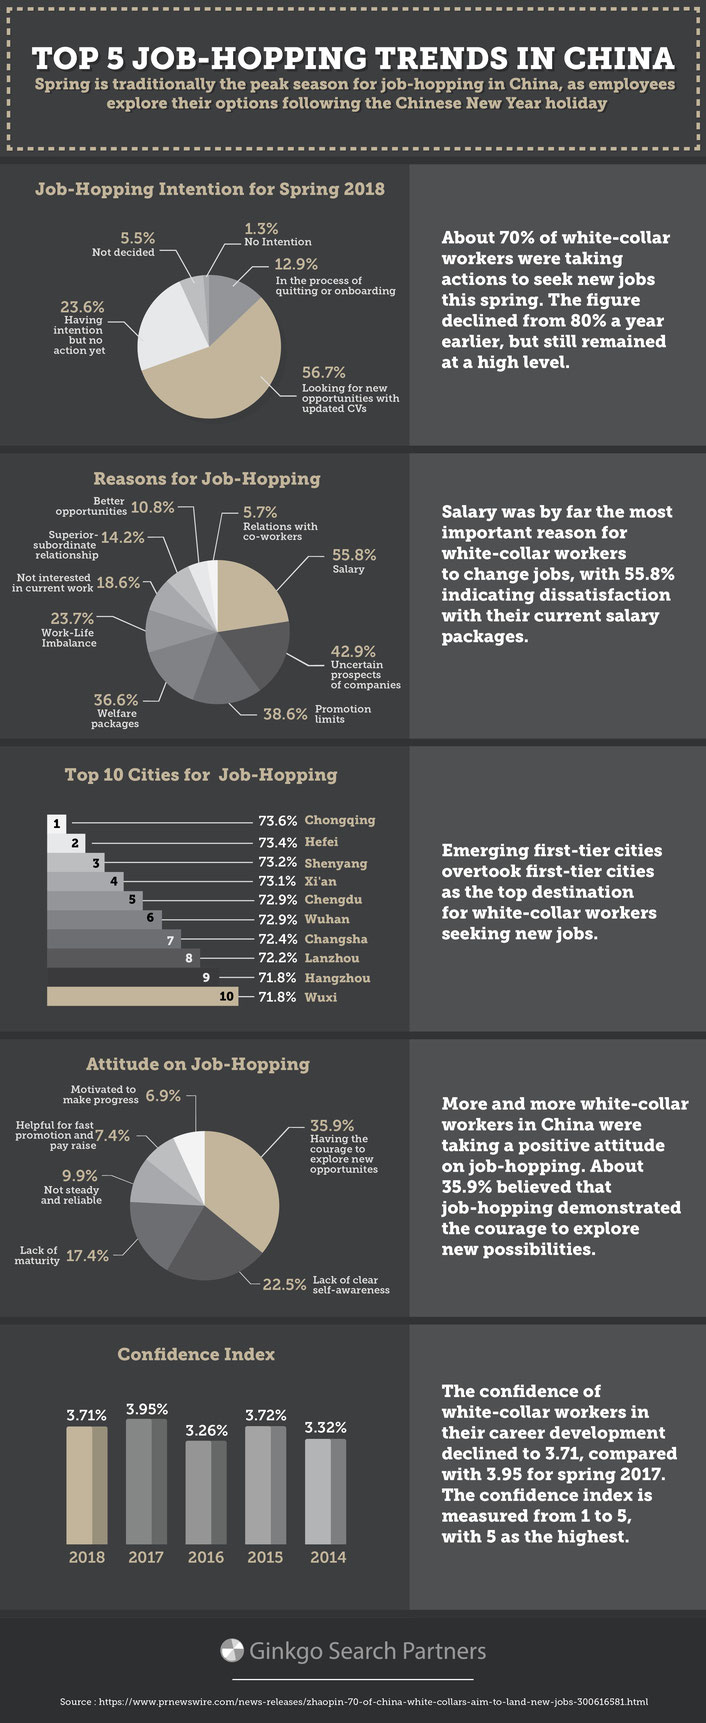 Top 5 Job-Hopping Trends in China